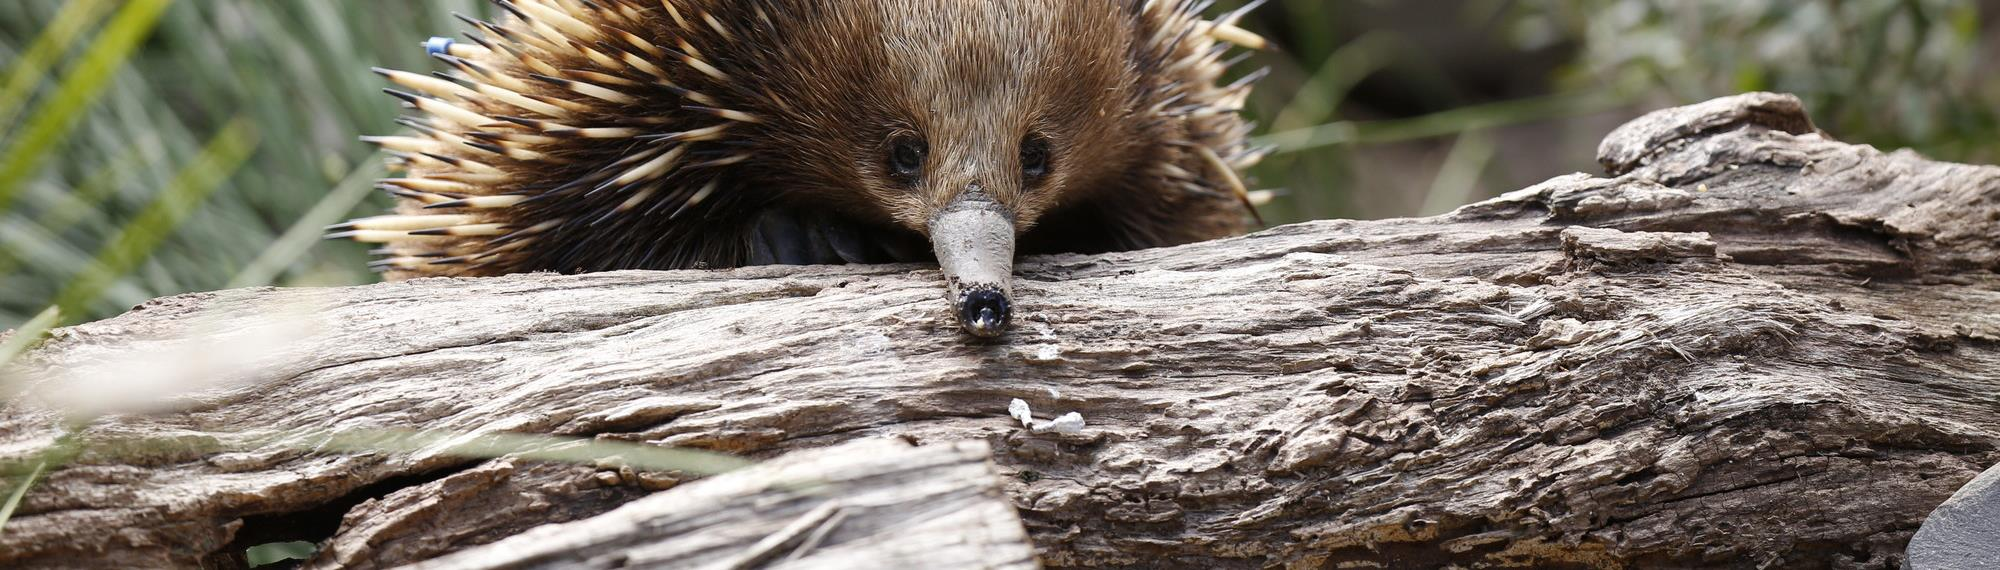 Short Beaked Echidna peaking over a log. Its beak is resting on the log and its looking towards the camera. Its brown with creamy colour spikes.